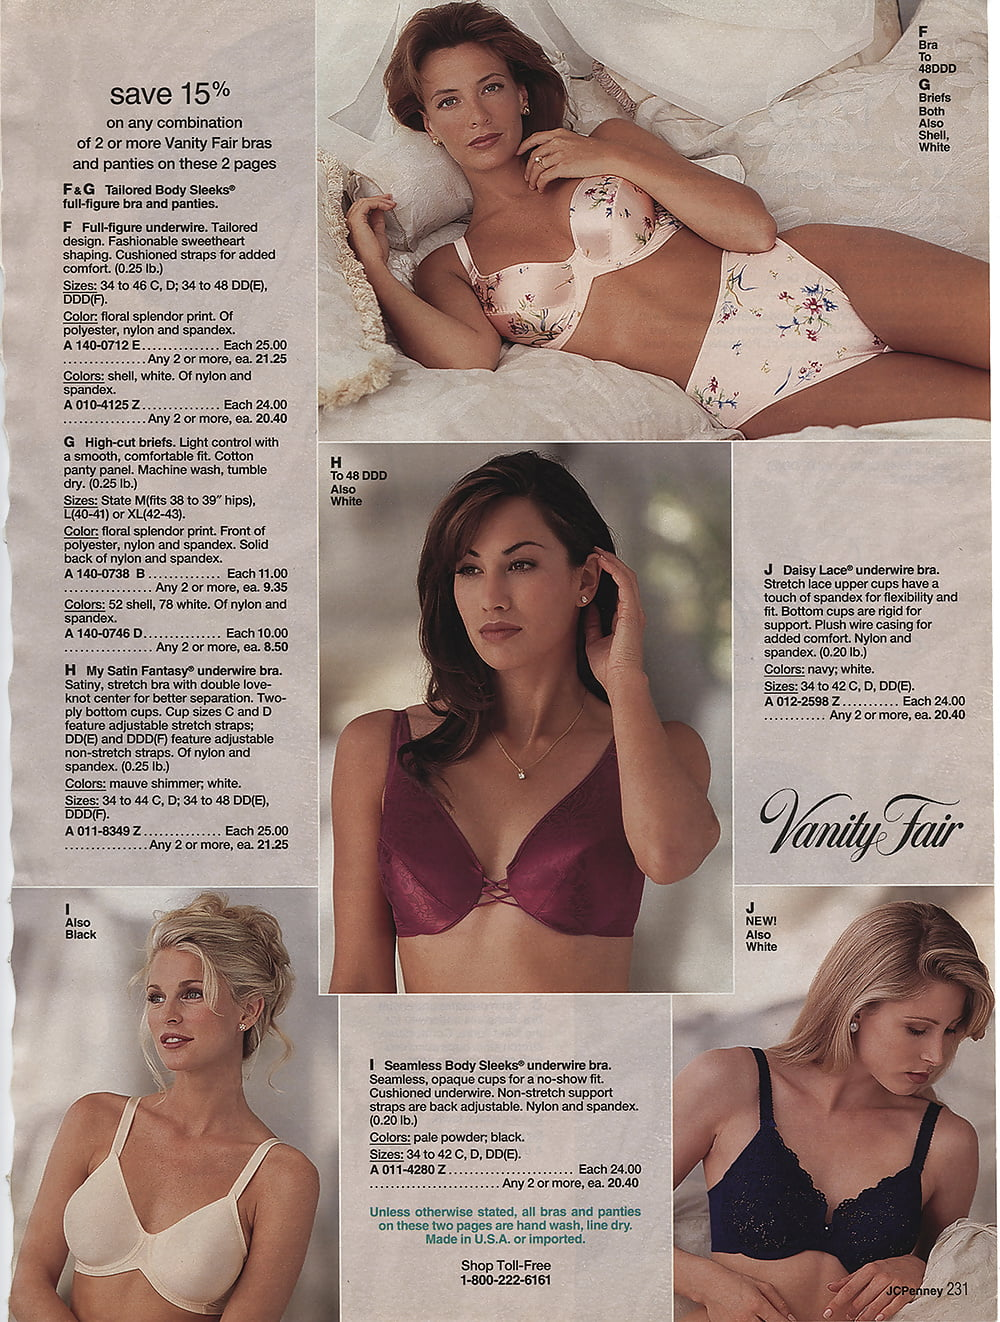 Casting nikky andersson 1996 - 5 9